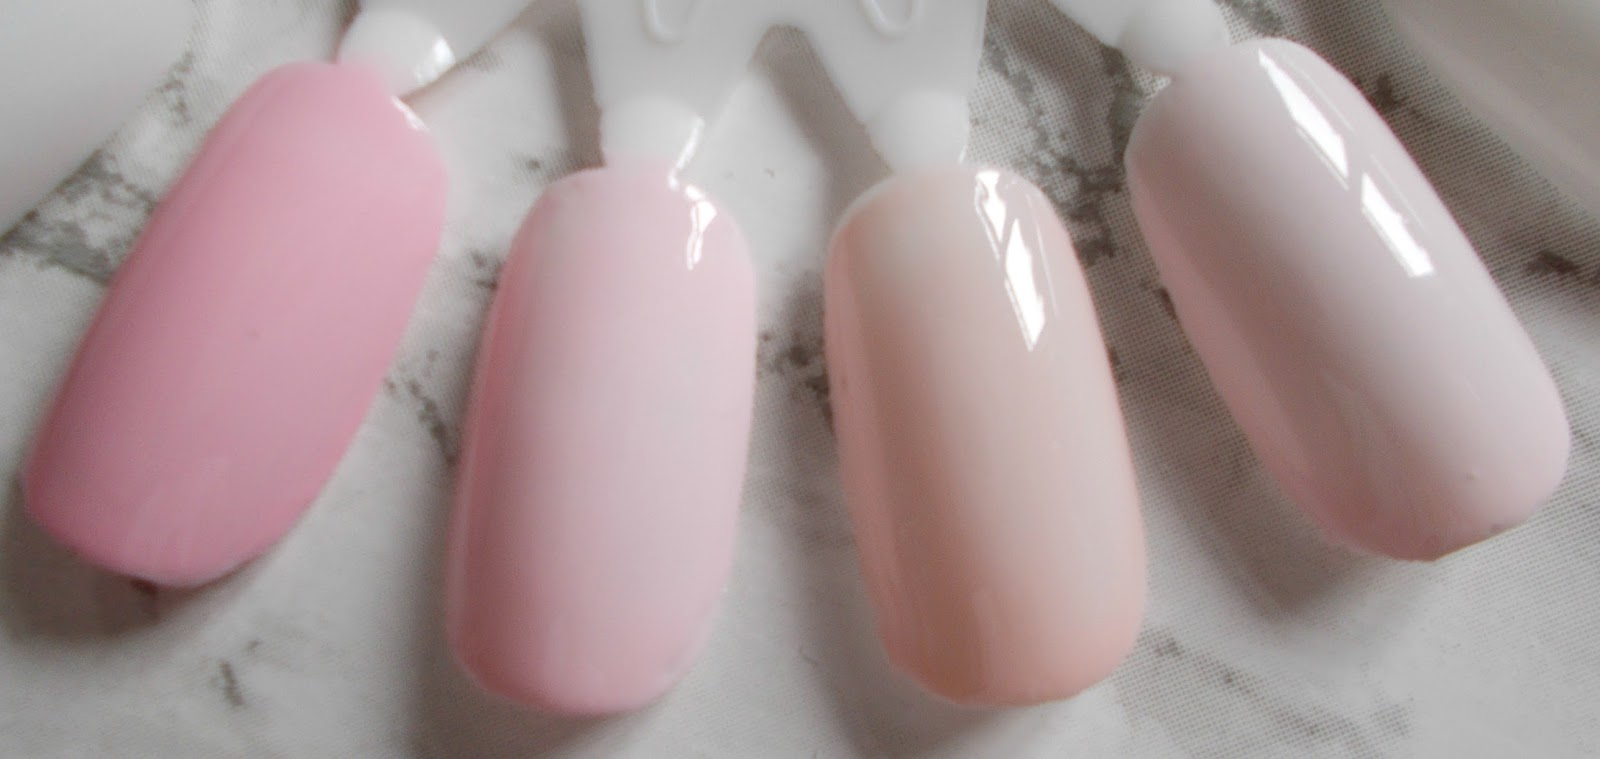 spring summer nail polishes glossier pink nails inc chiltern street barry m rose hip opi bubble bath essie fiji swatches